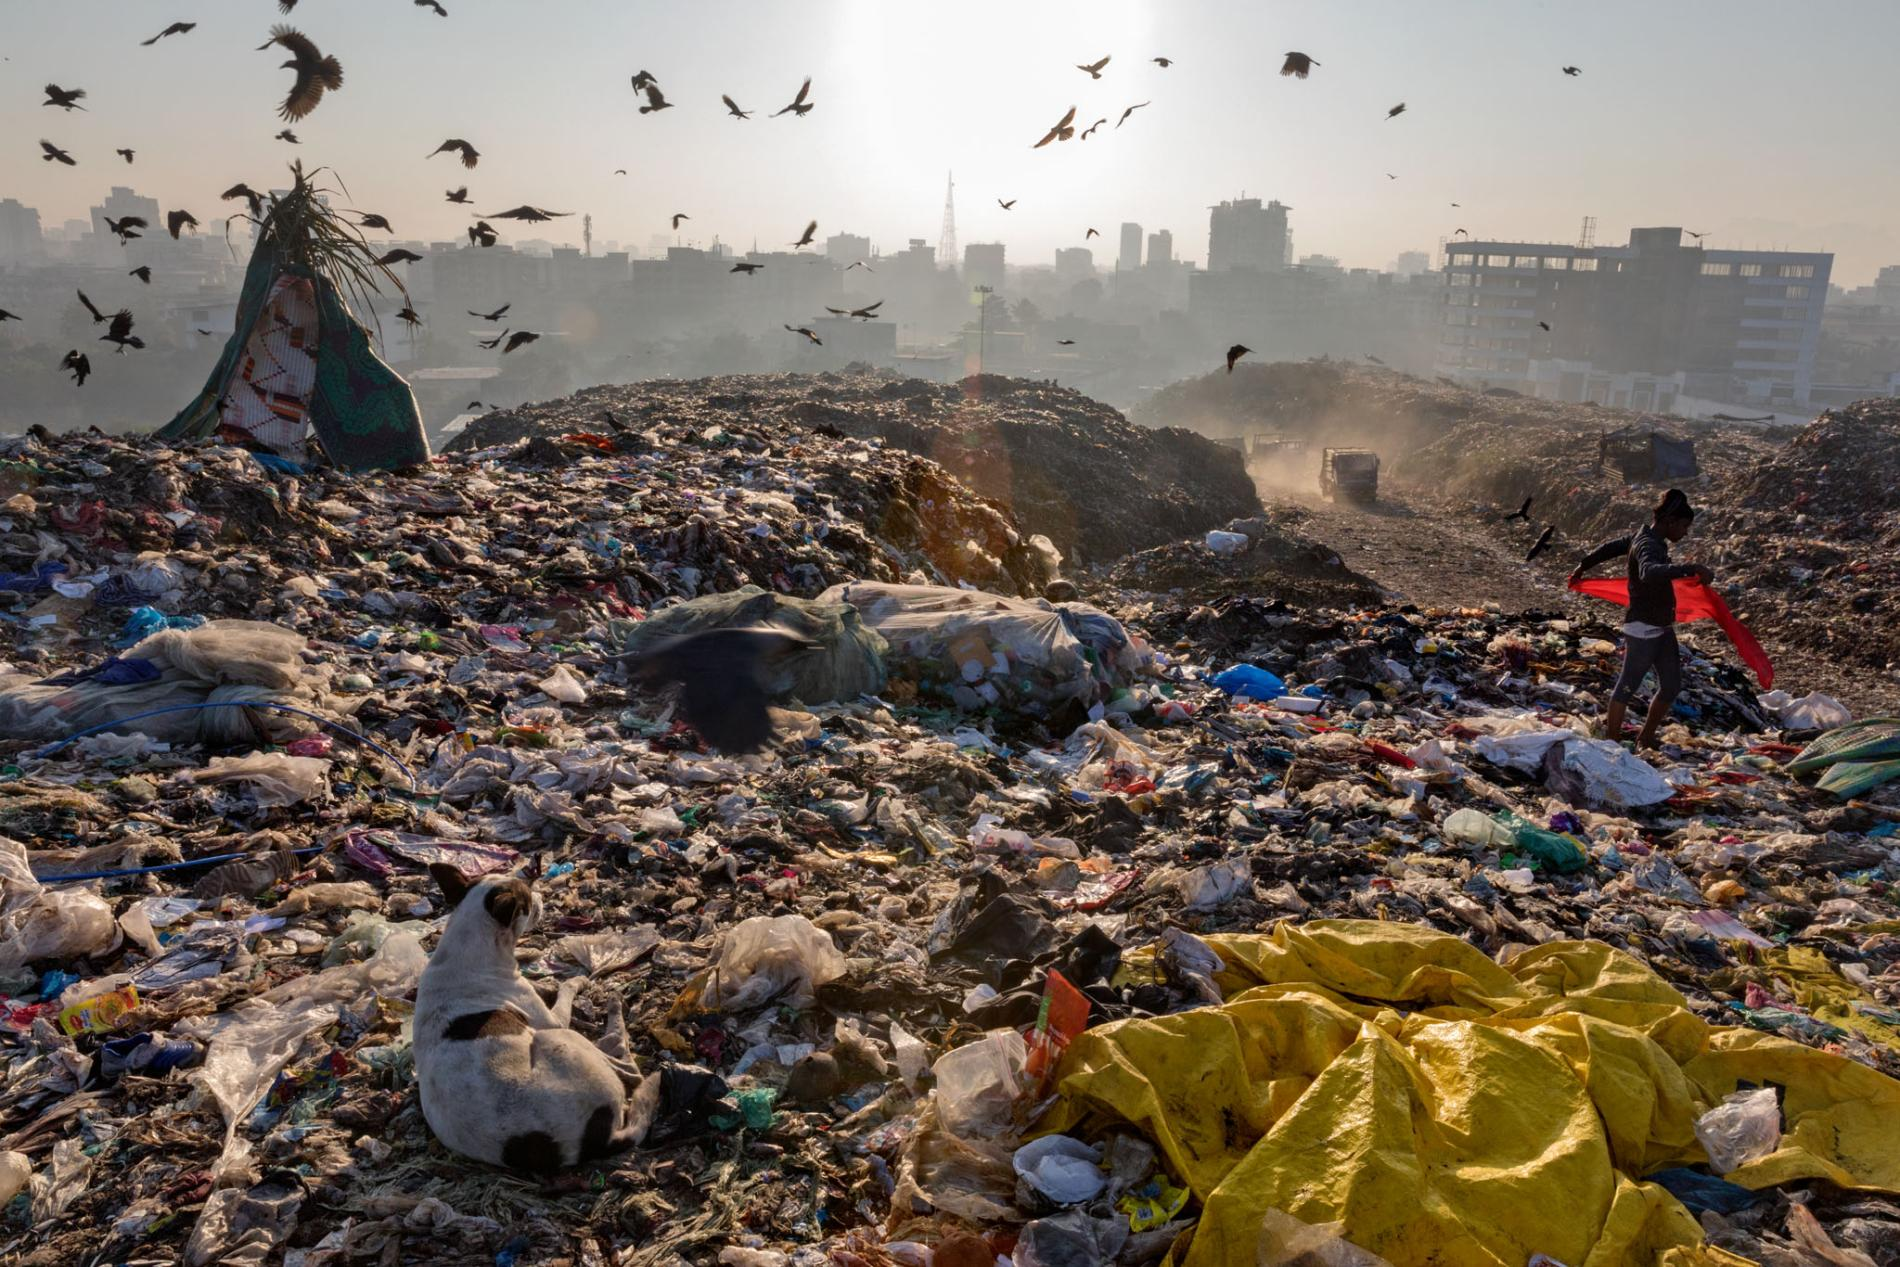 Photo from National Geographic:  https://www.nationalgeographic.com/magazine/2018/06/plastic-planet-waste-pollution-trash-crisis/